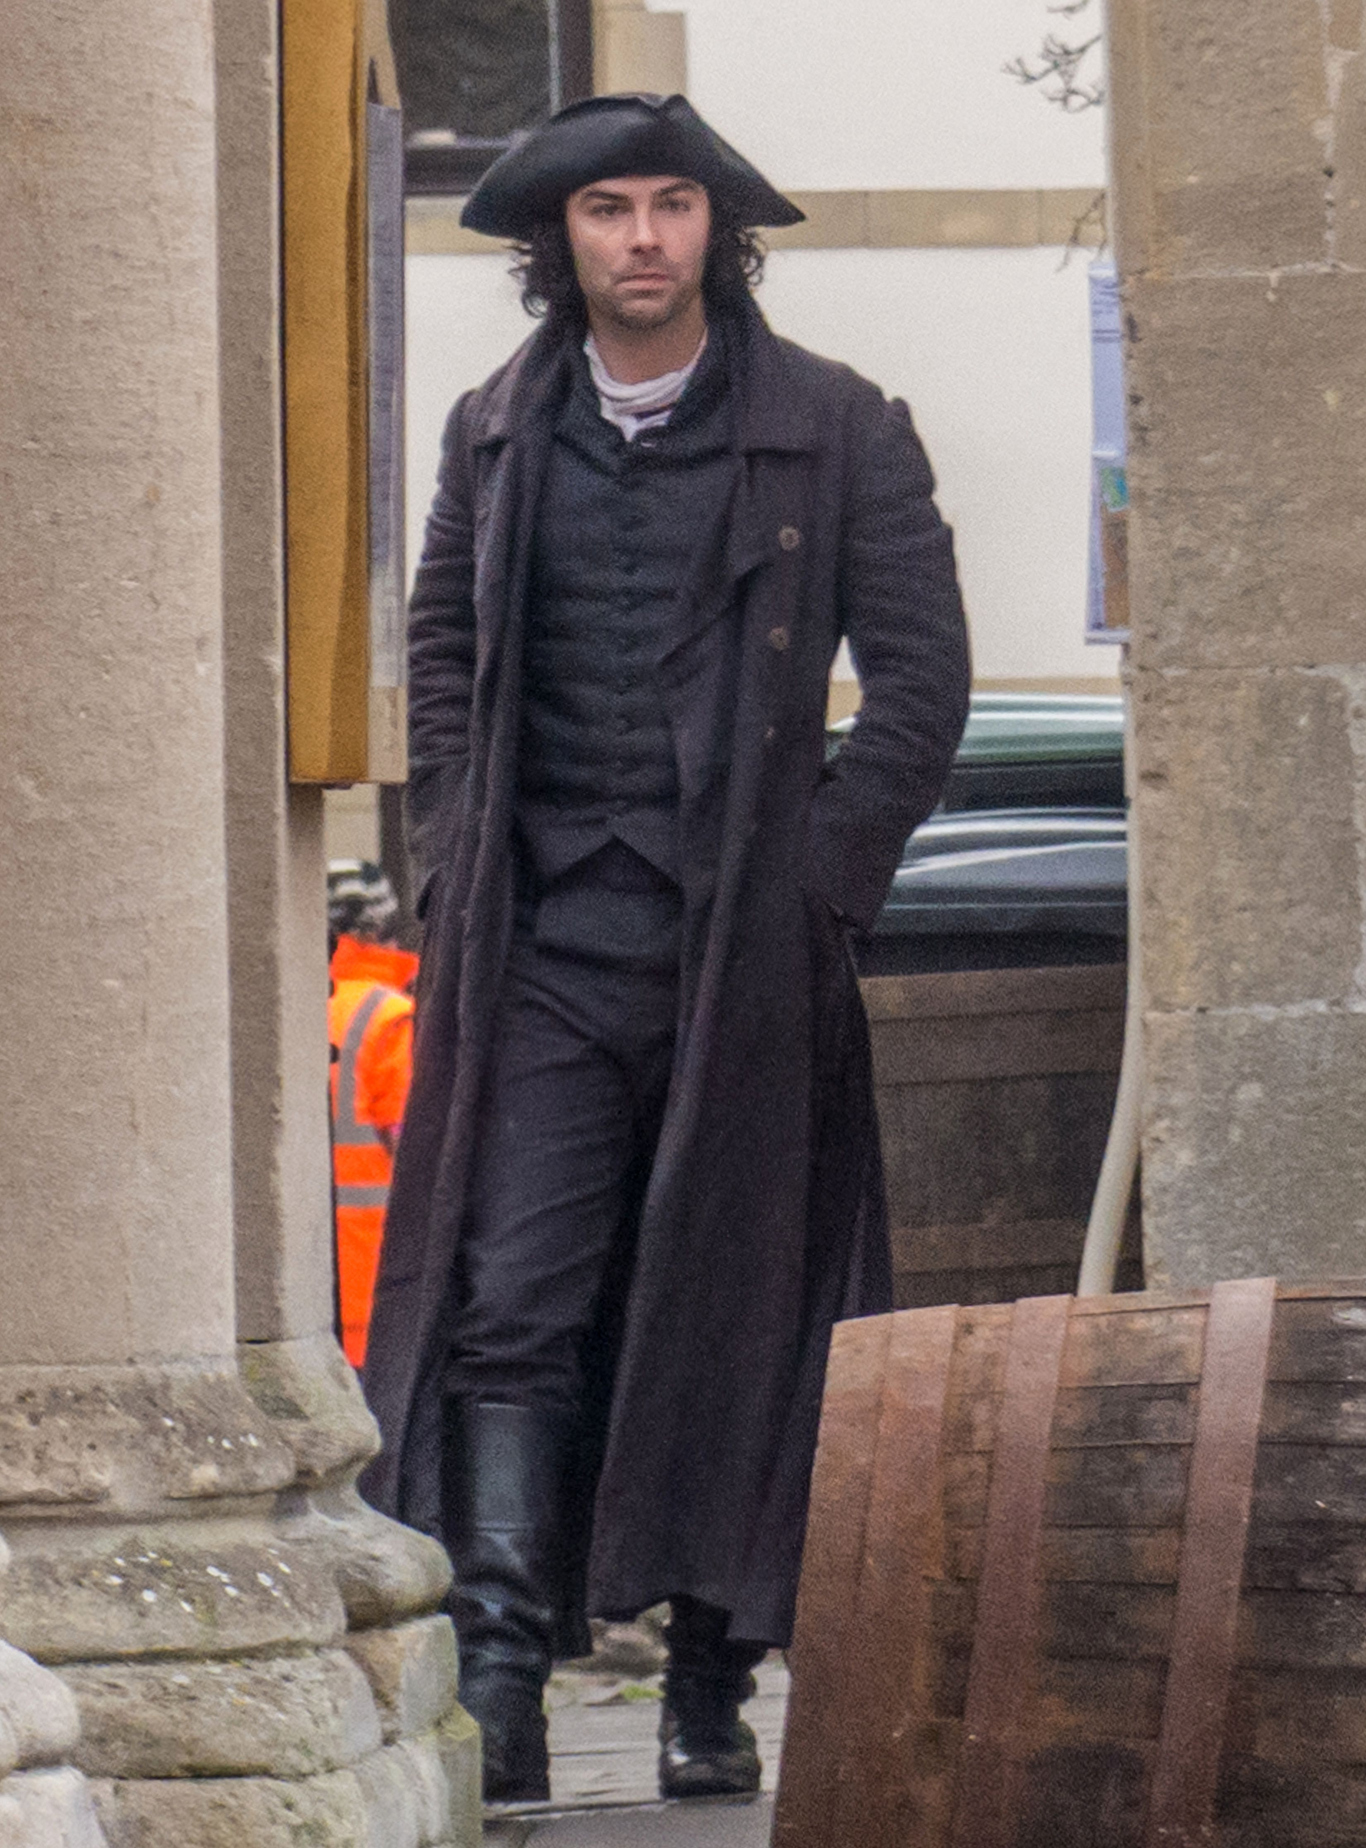 Aidan Turner (Ross Poldark)'Poldark' on set filming, Wells, UK - 10 Feb 2017